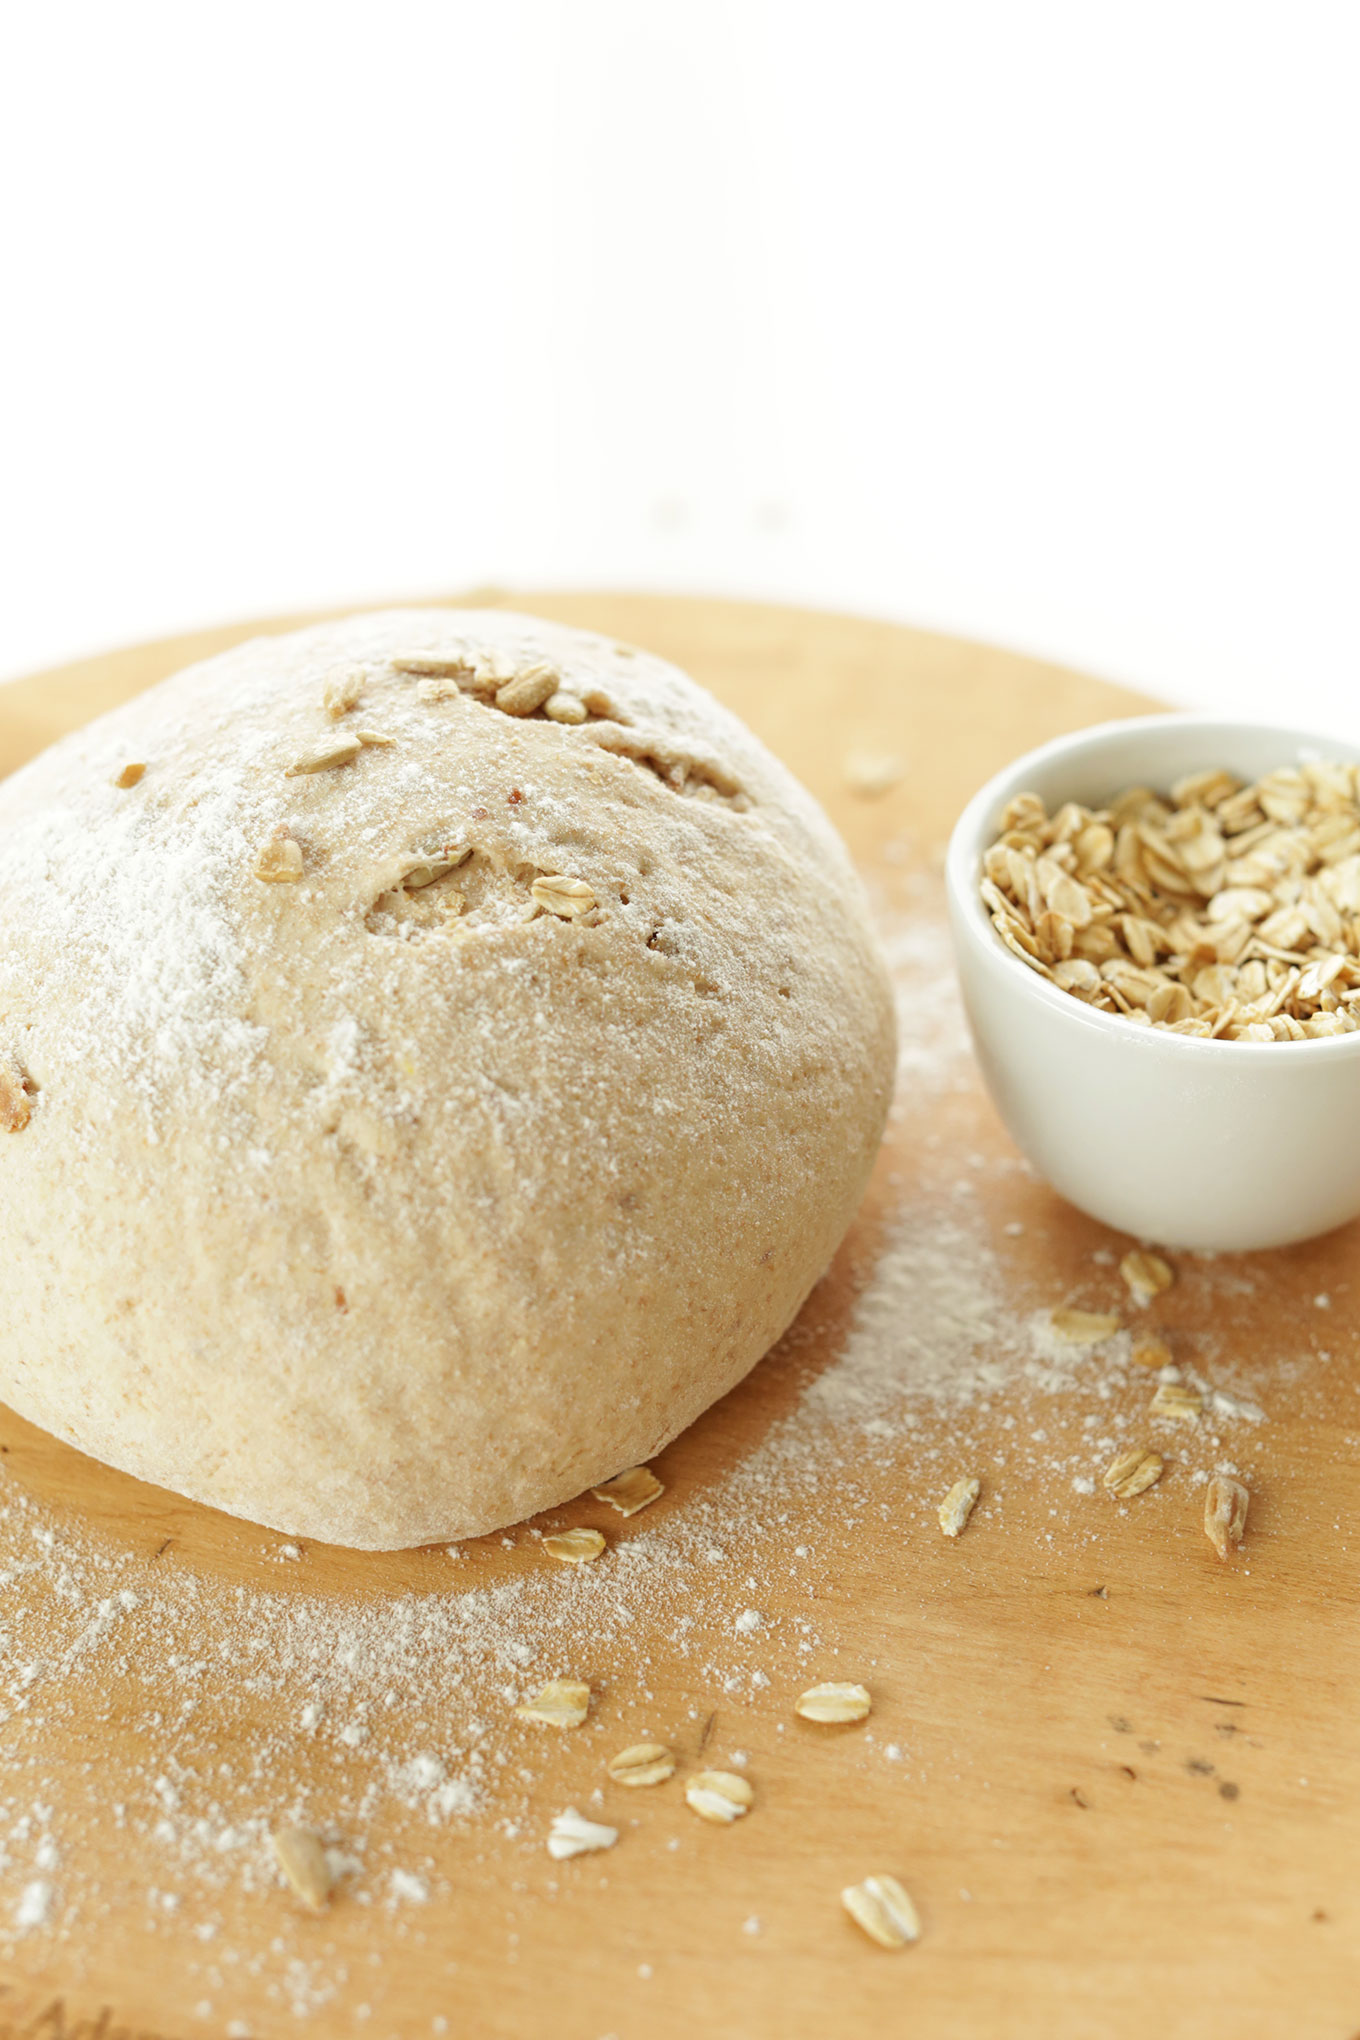 Loaf of our simple homemade Whole Grain Seedy Vegan Bread that's perfect for making sandwiches